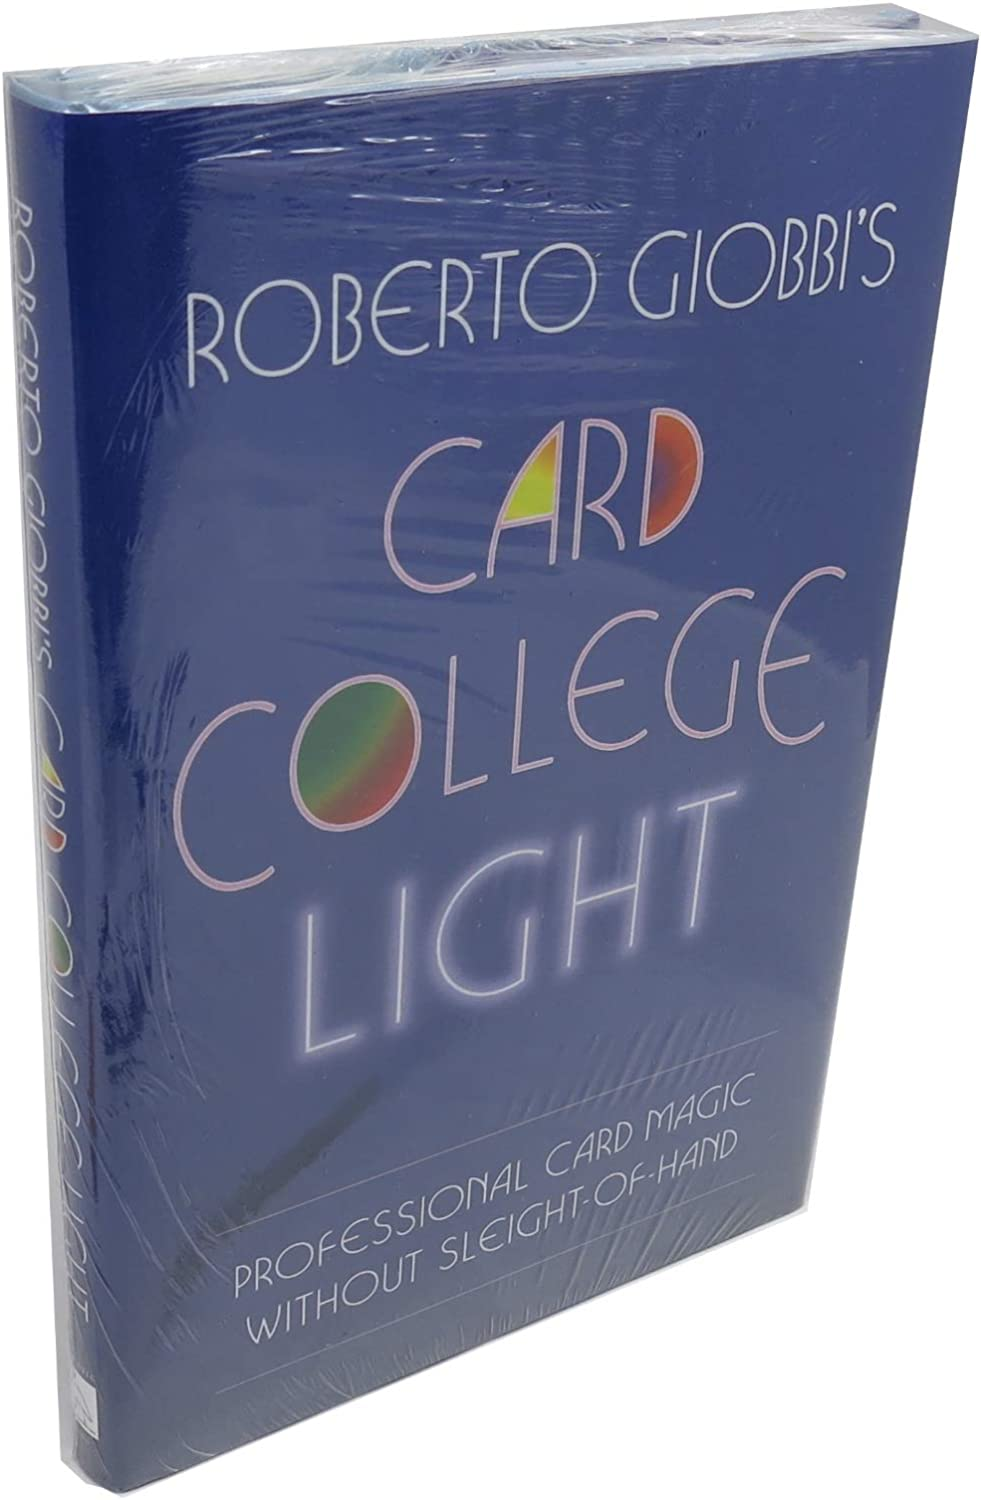 Card College Light Magic Giobbi OFFicial mail order Free shipping Roberto by Trick